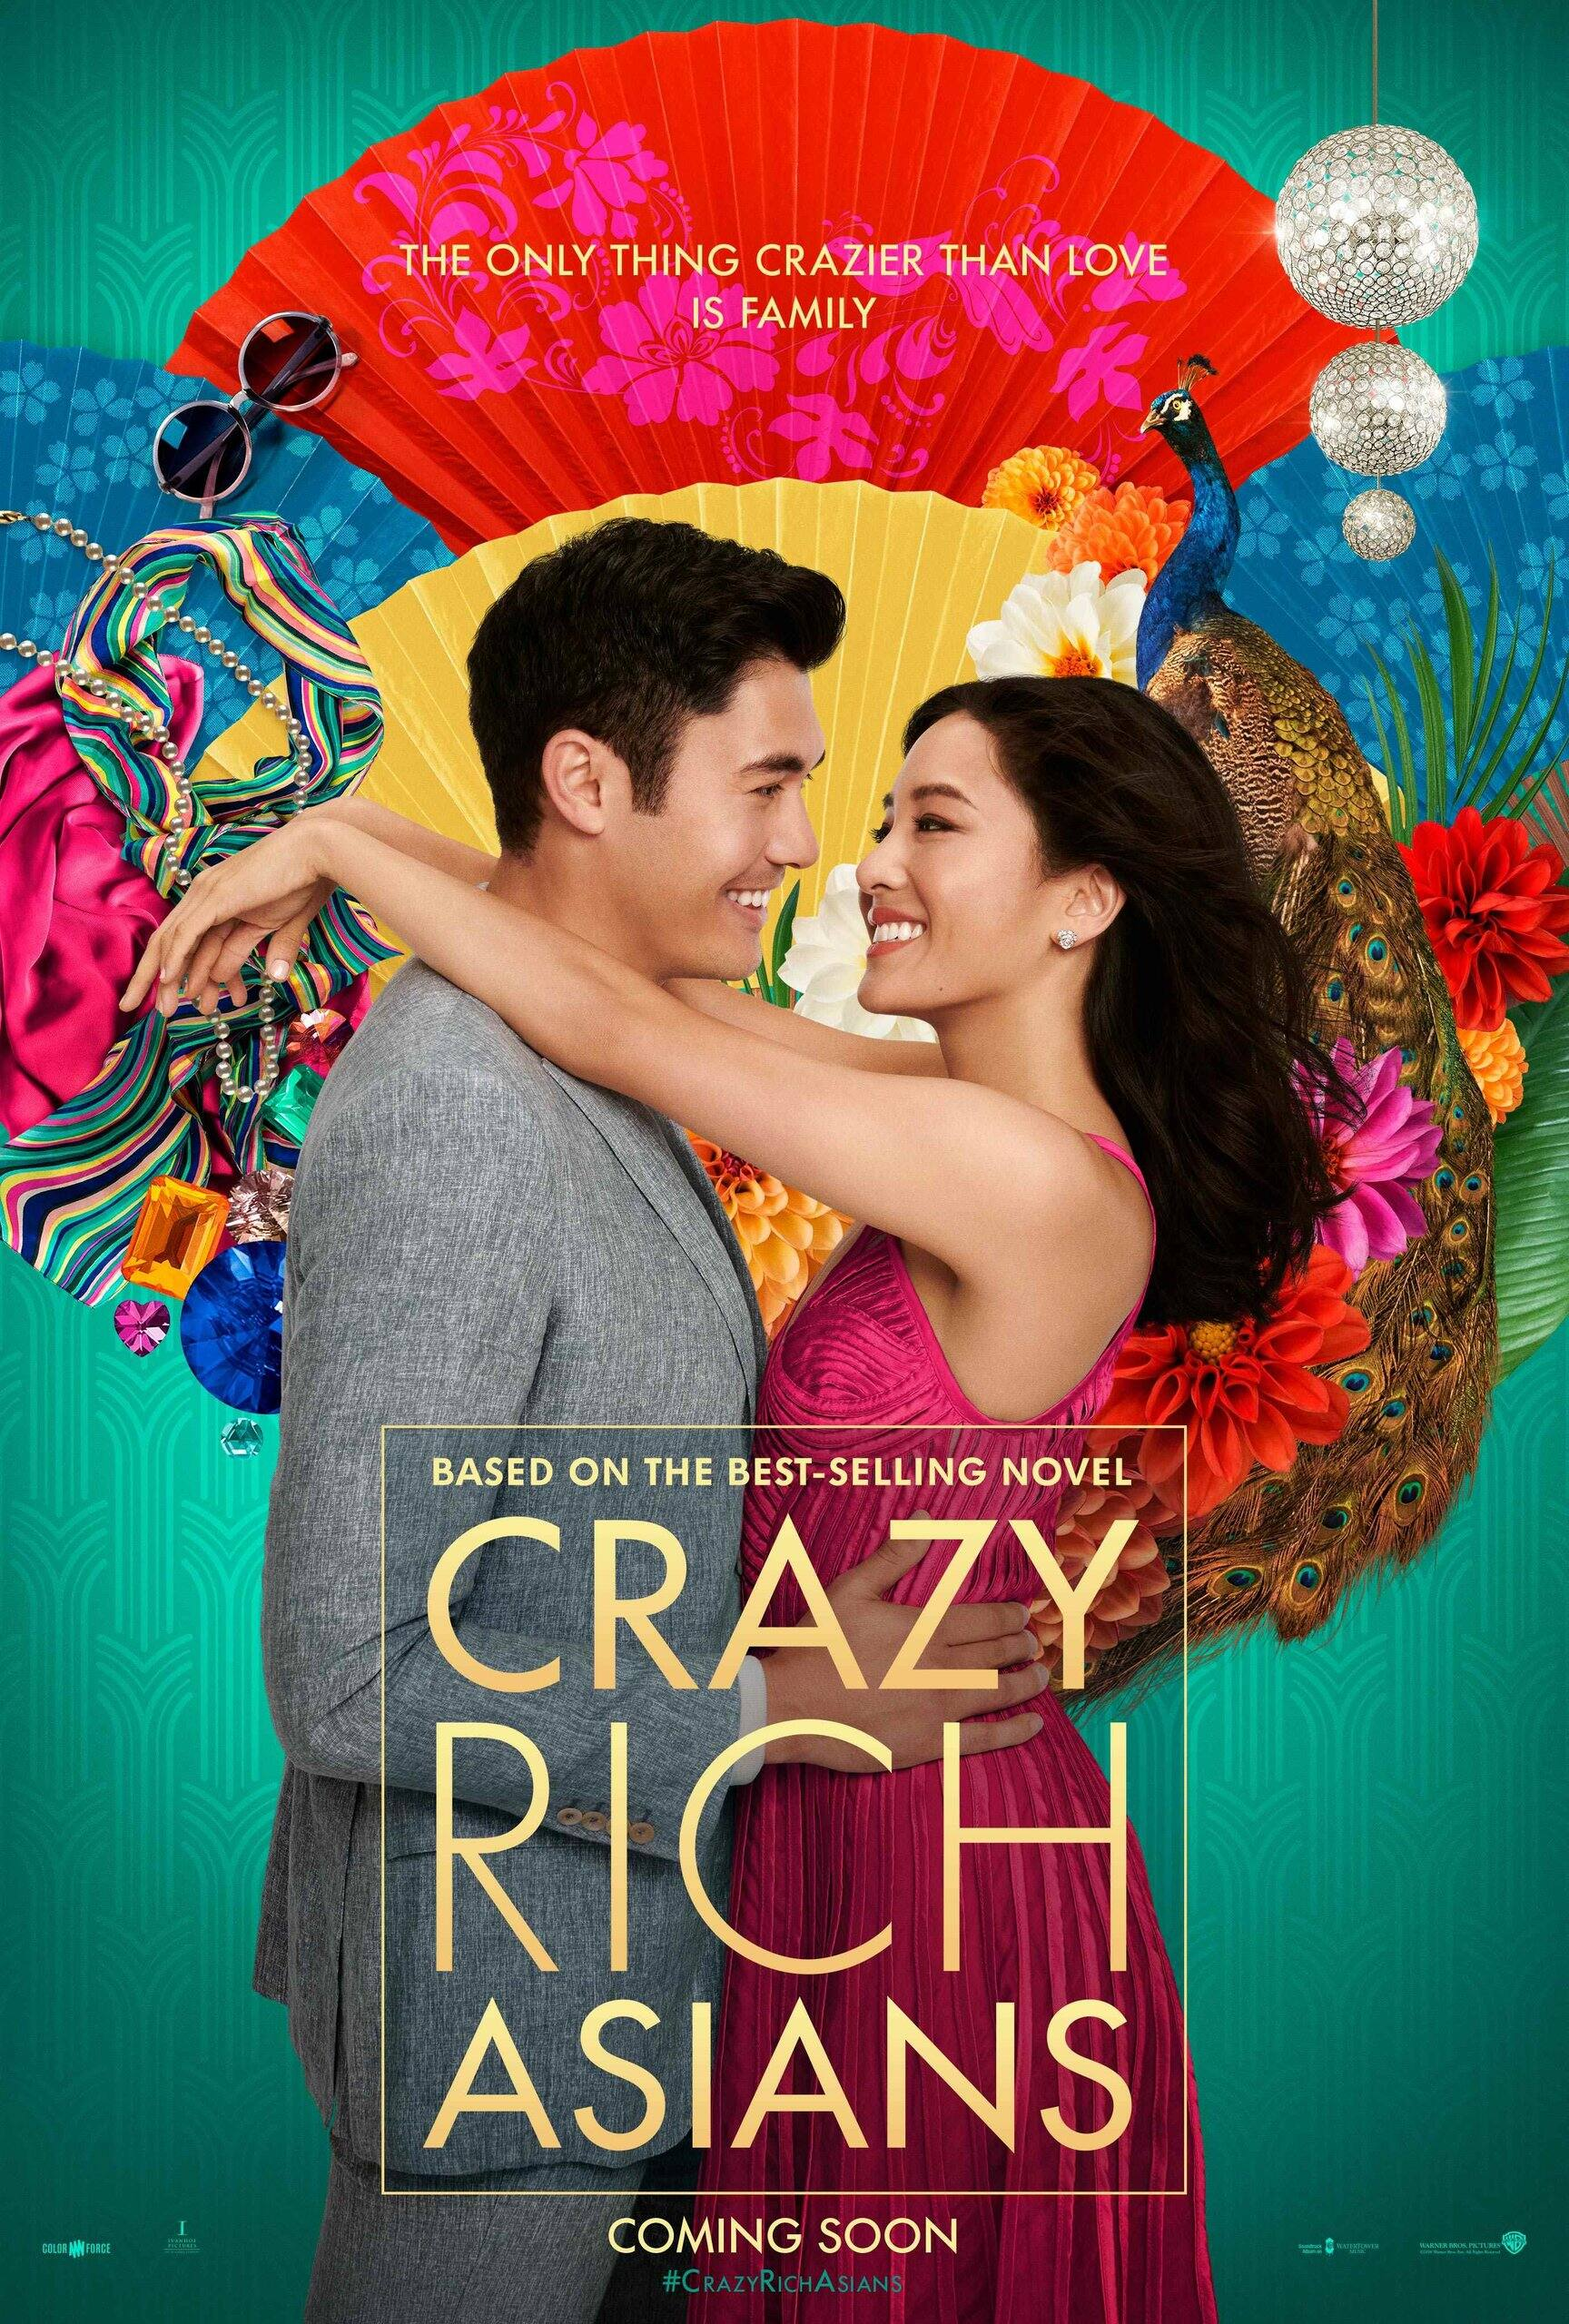 AMC Stubs: See CRAZY RICH ASIANS and Earn Double Points, 8/15 - 8/19!